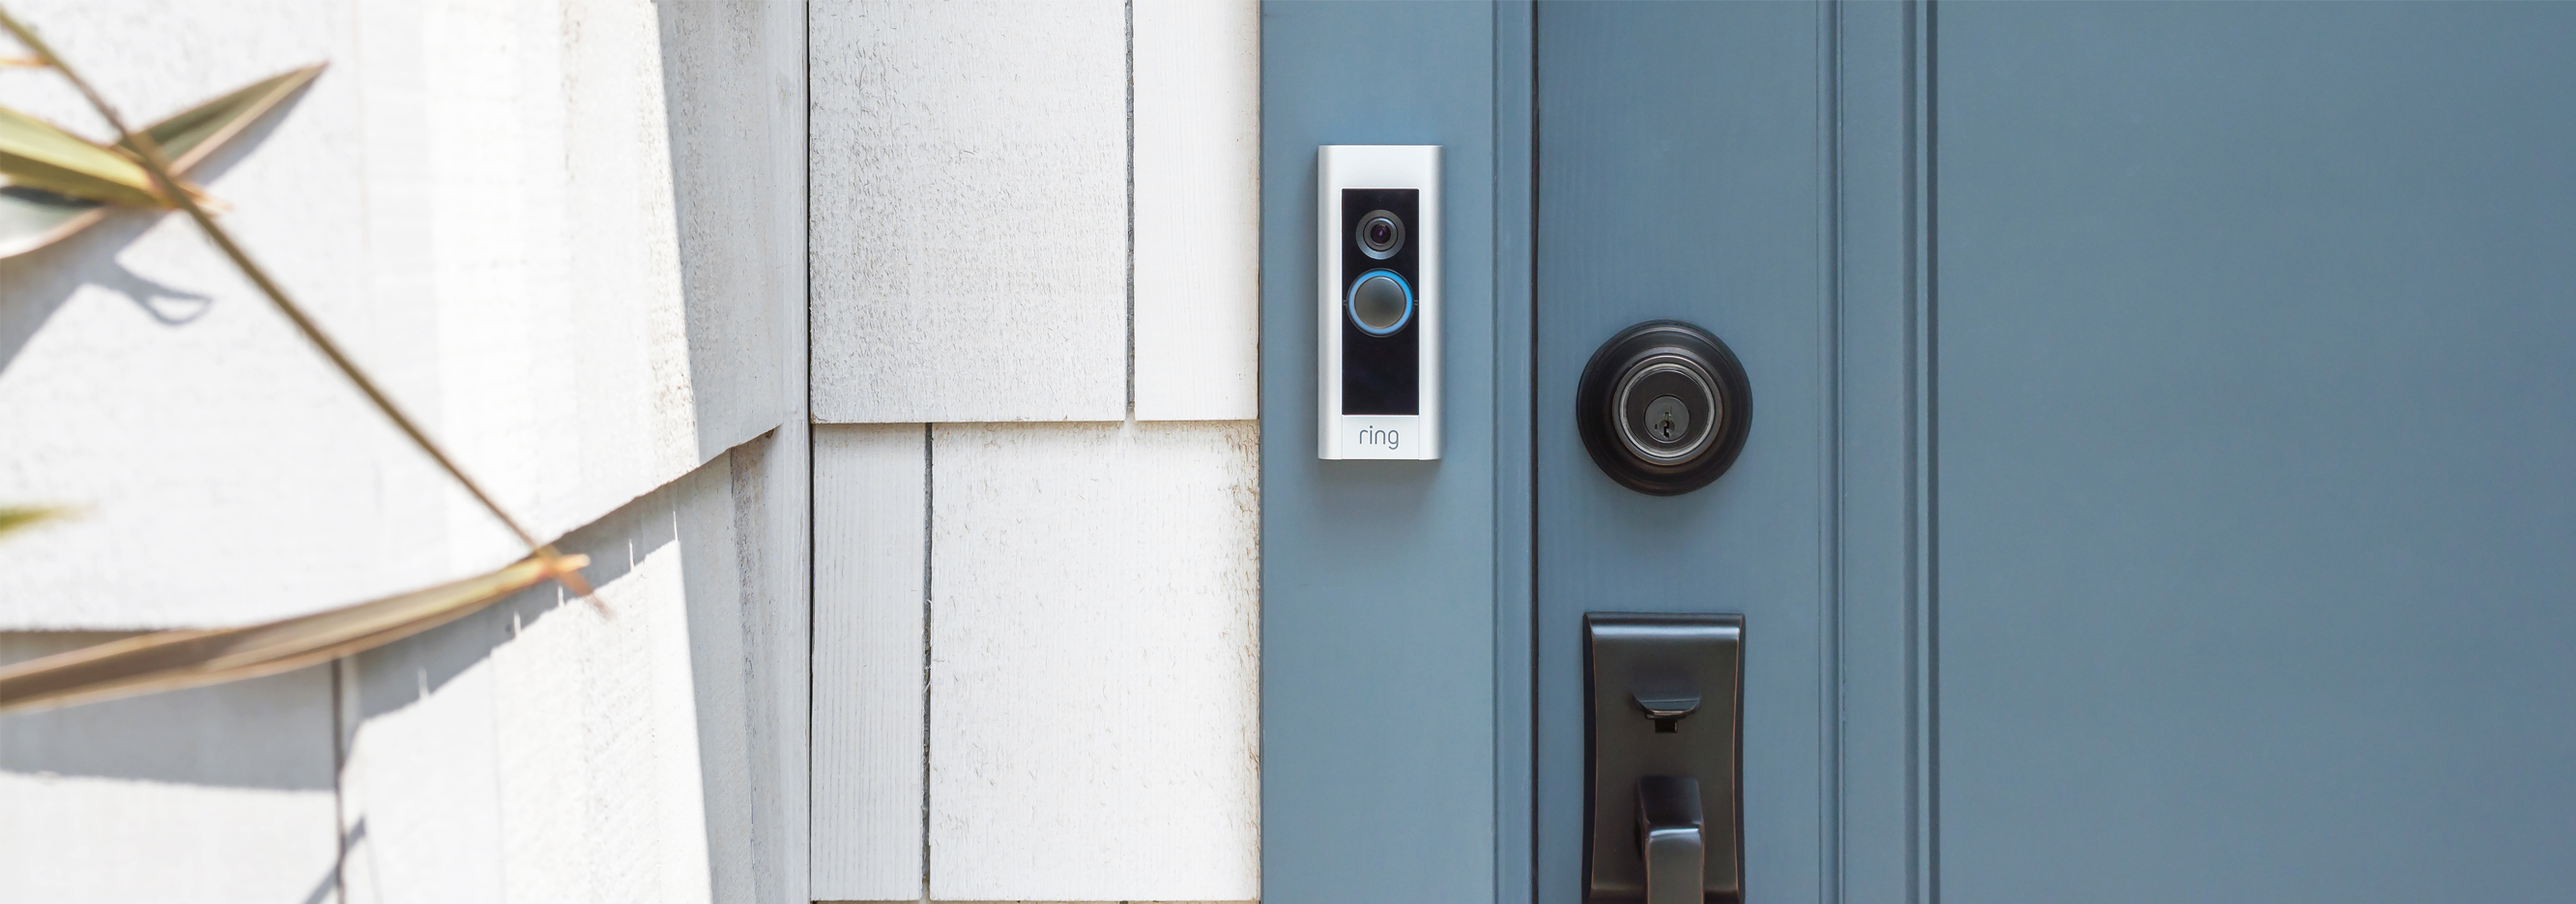 Ring Video Doorbell Collection